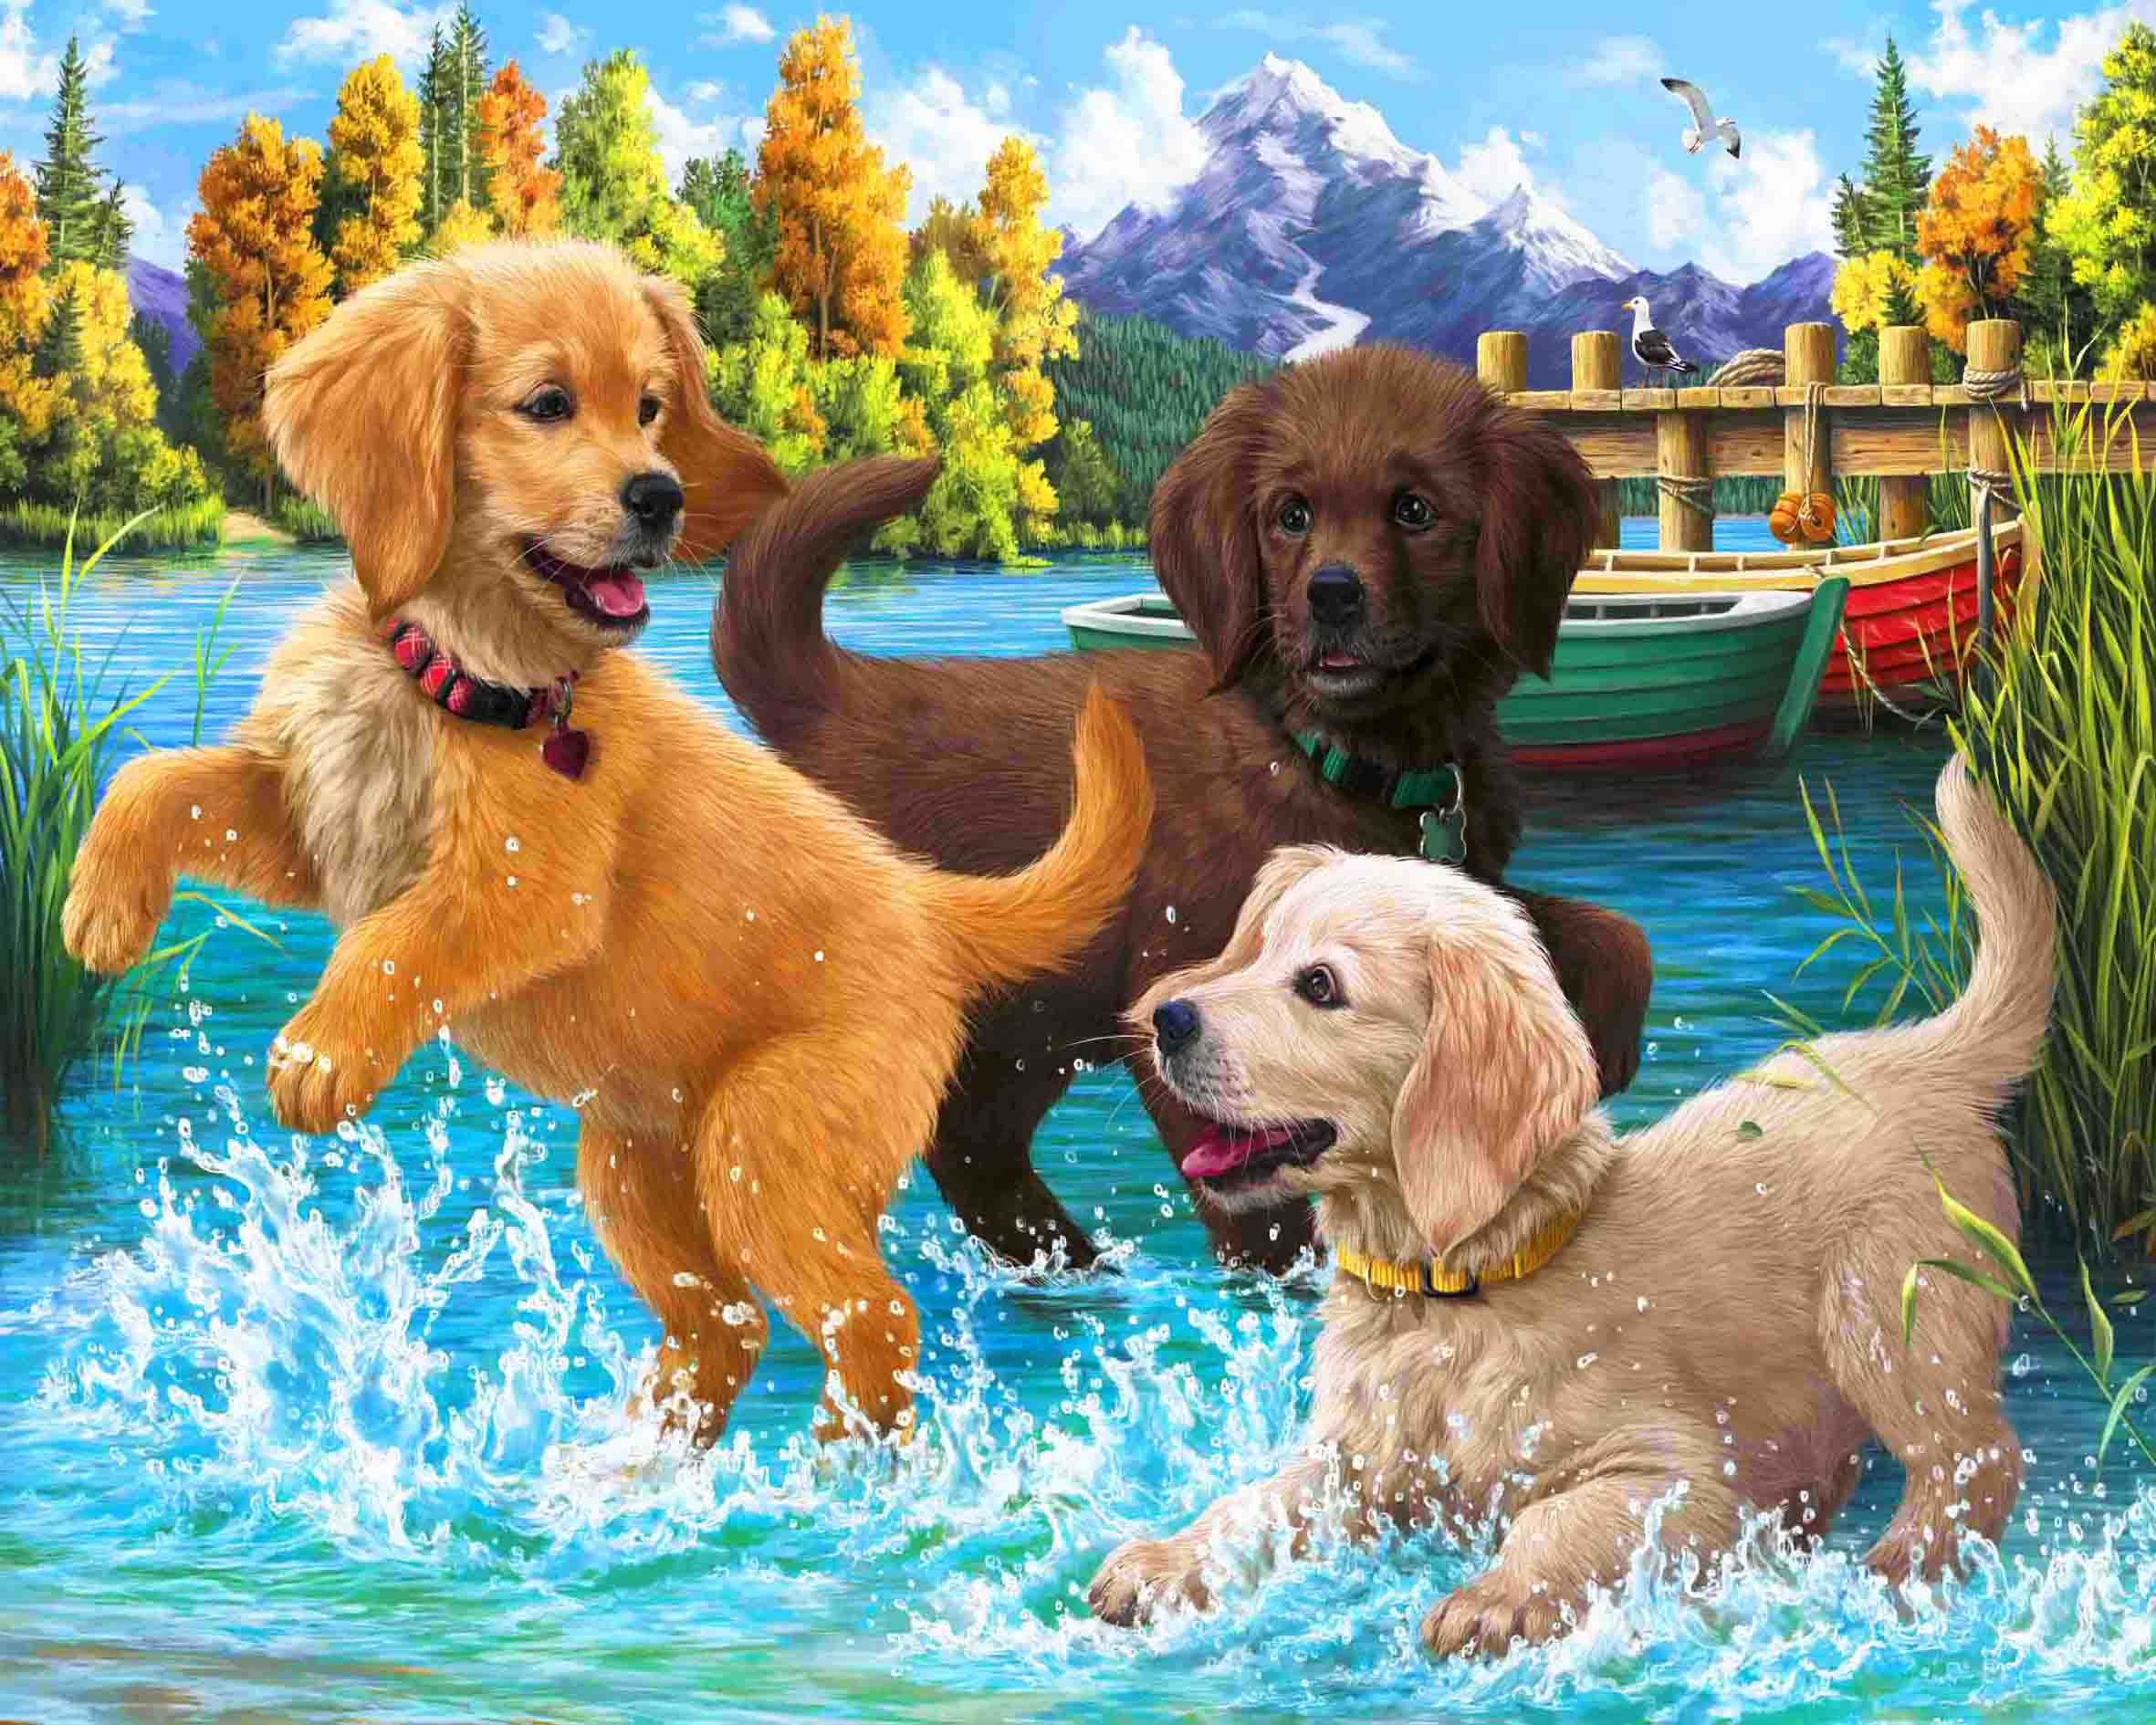 Three Puppies-DIY Diamond Painting